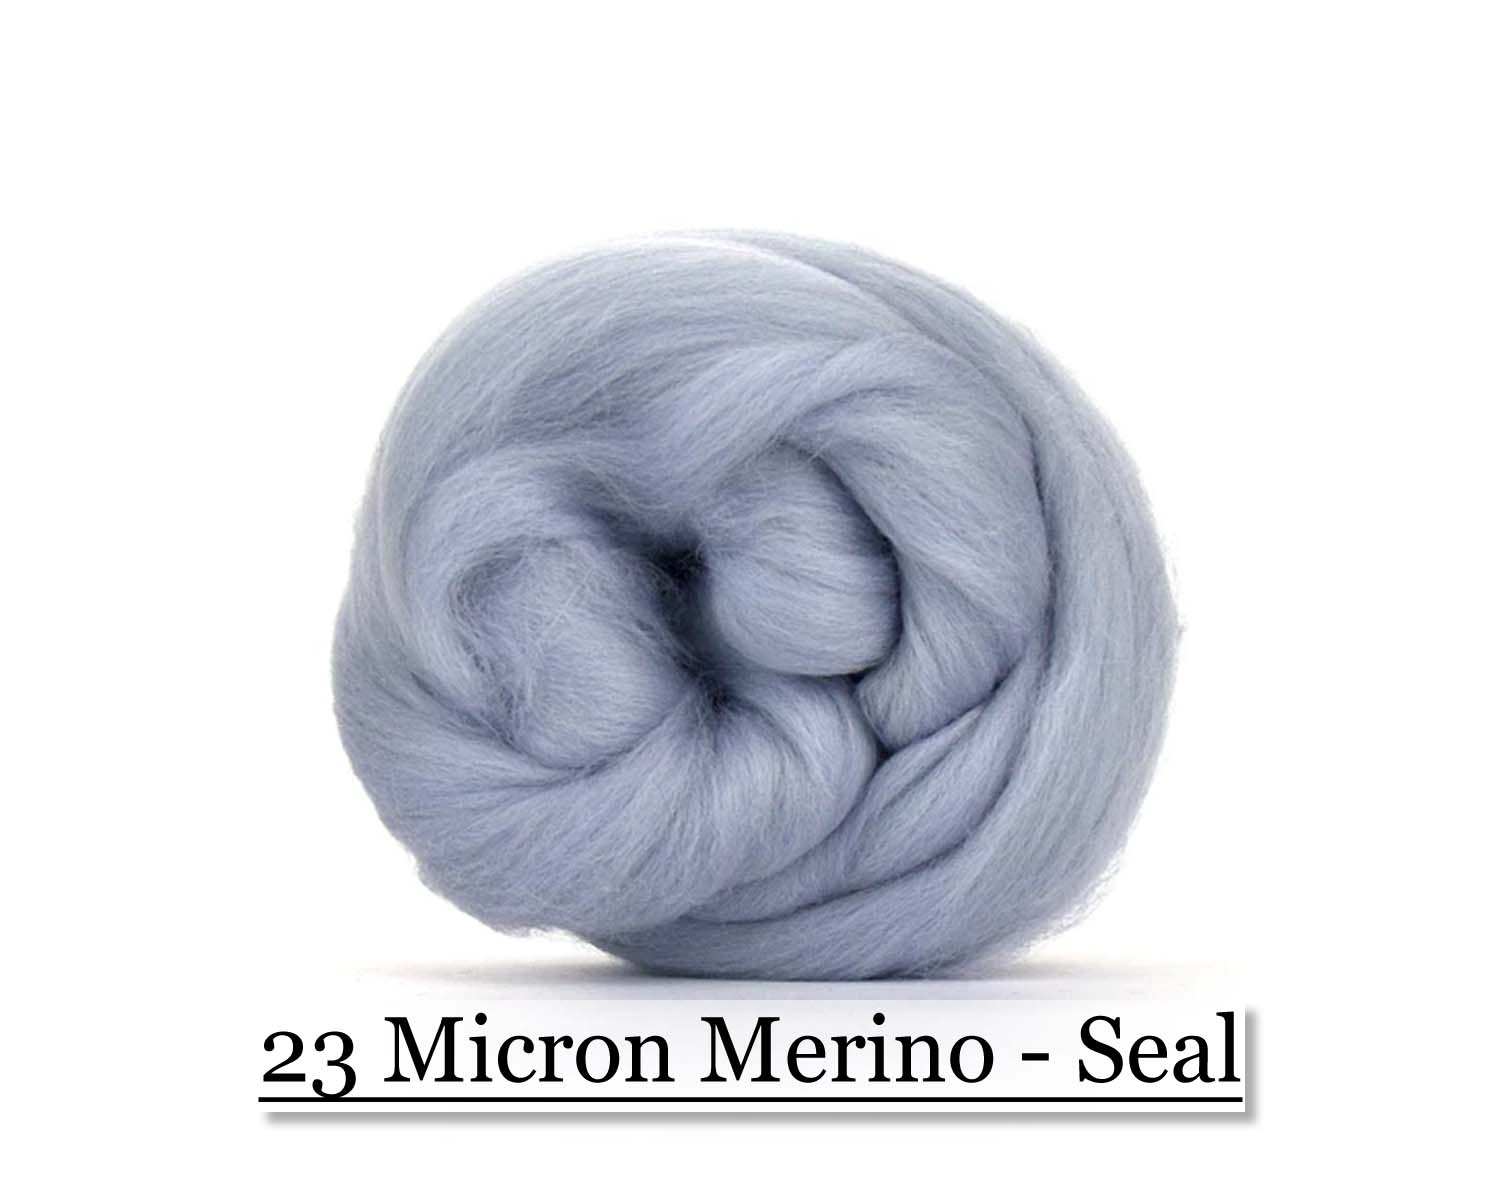 Seal -  Merino Wool Top - 23 Micron